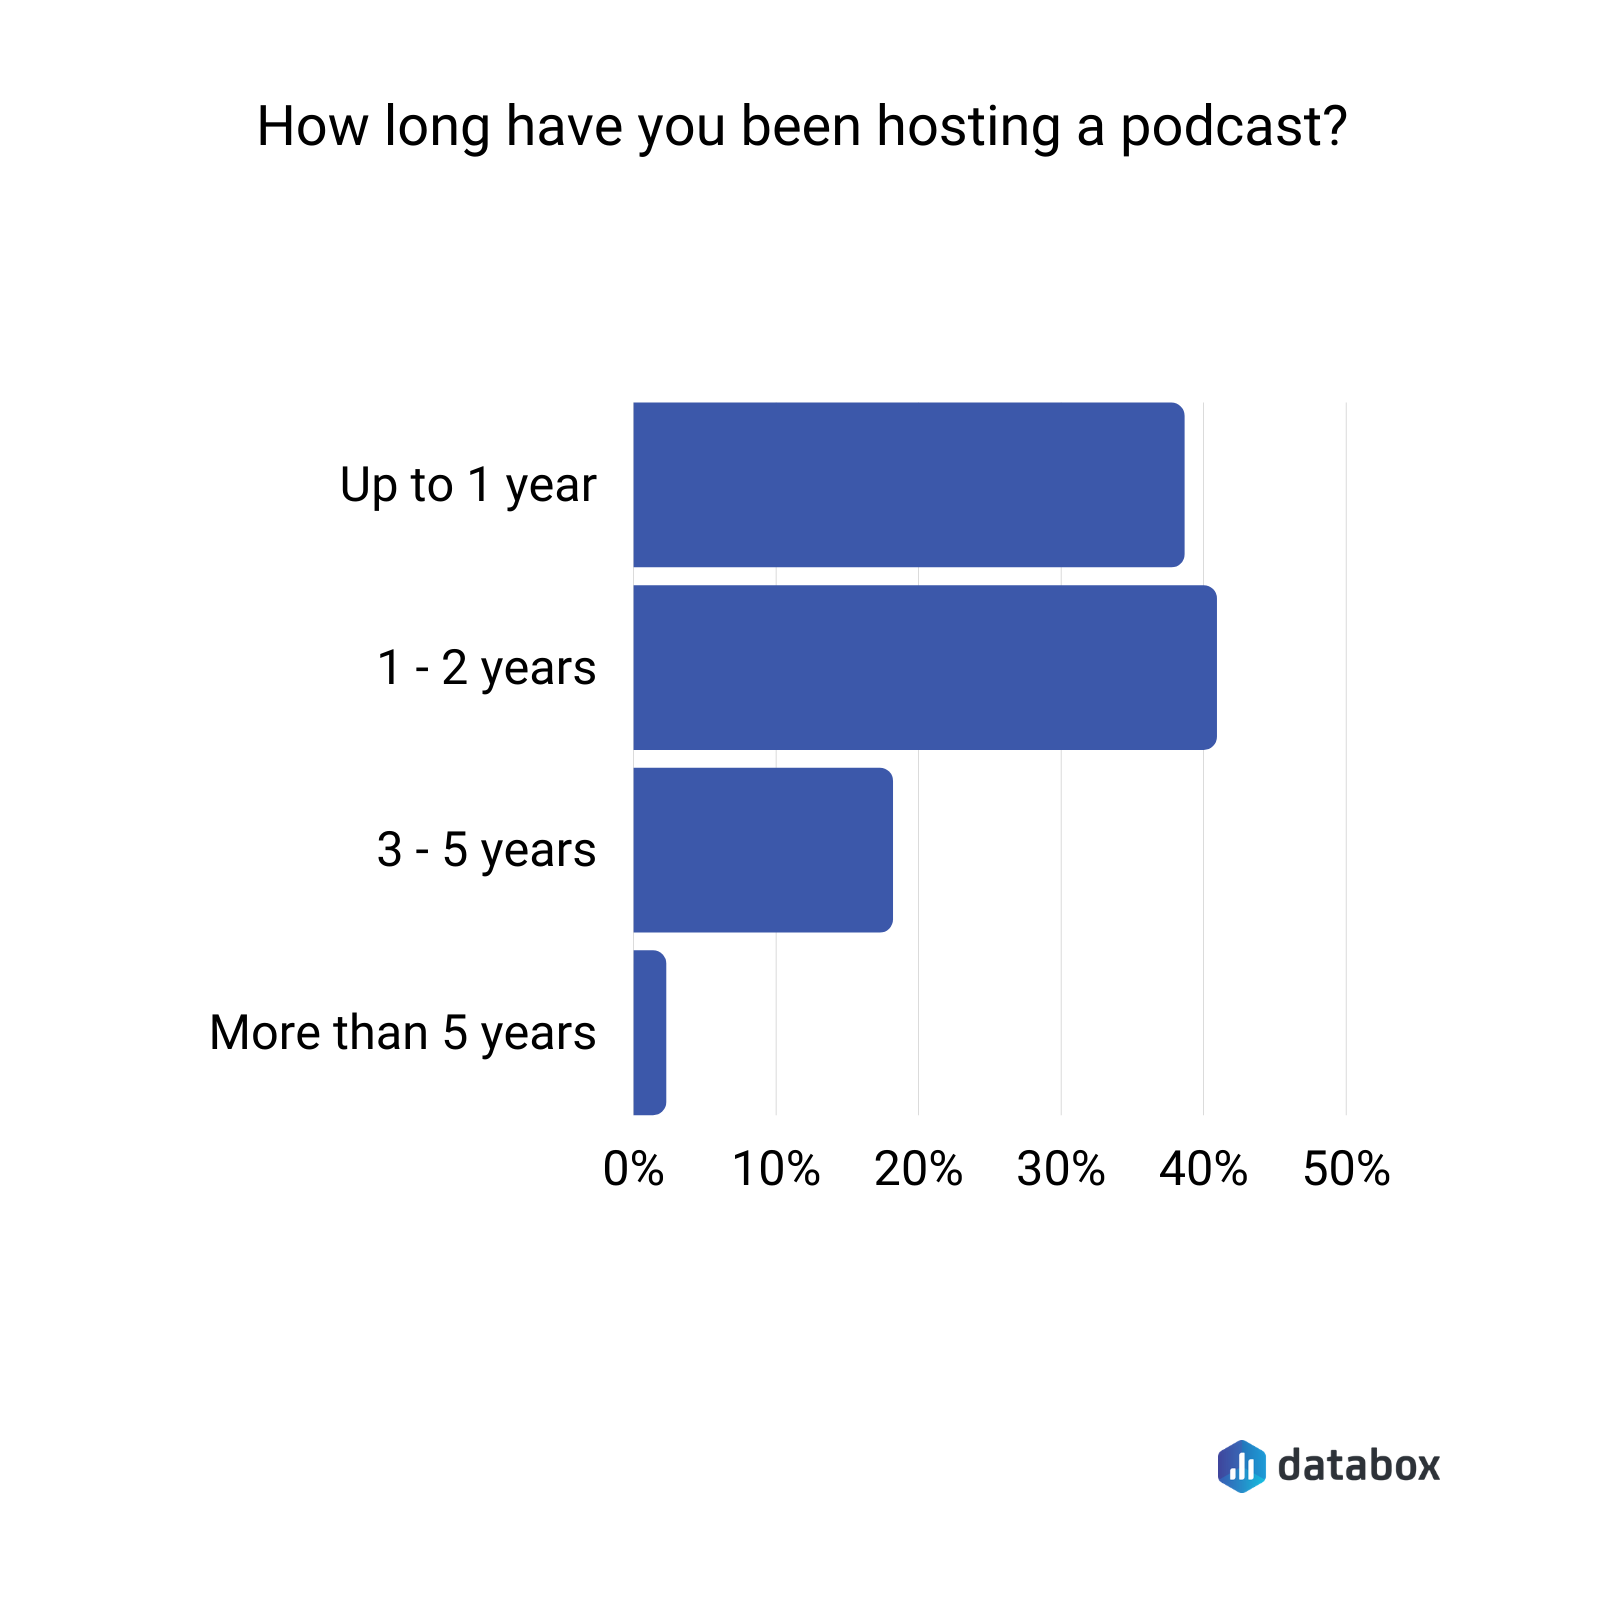 how long have you been hosting a podcast?